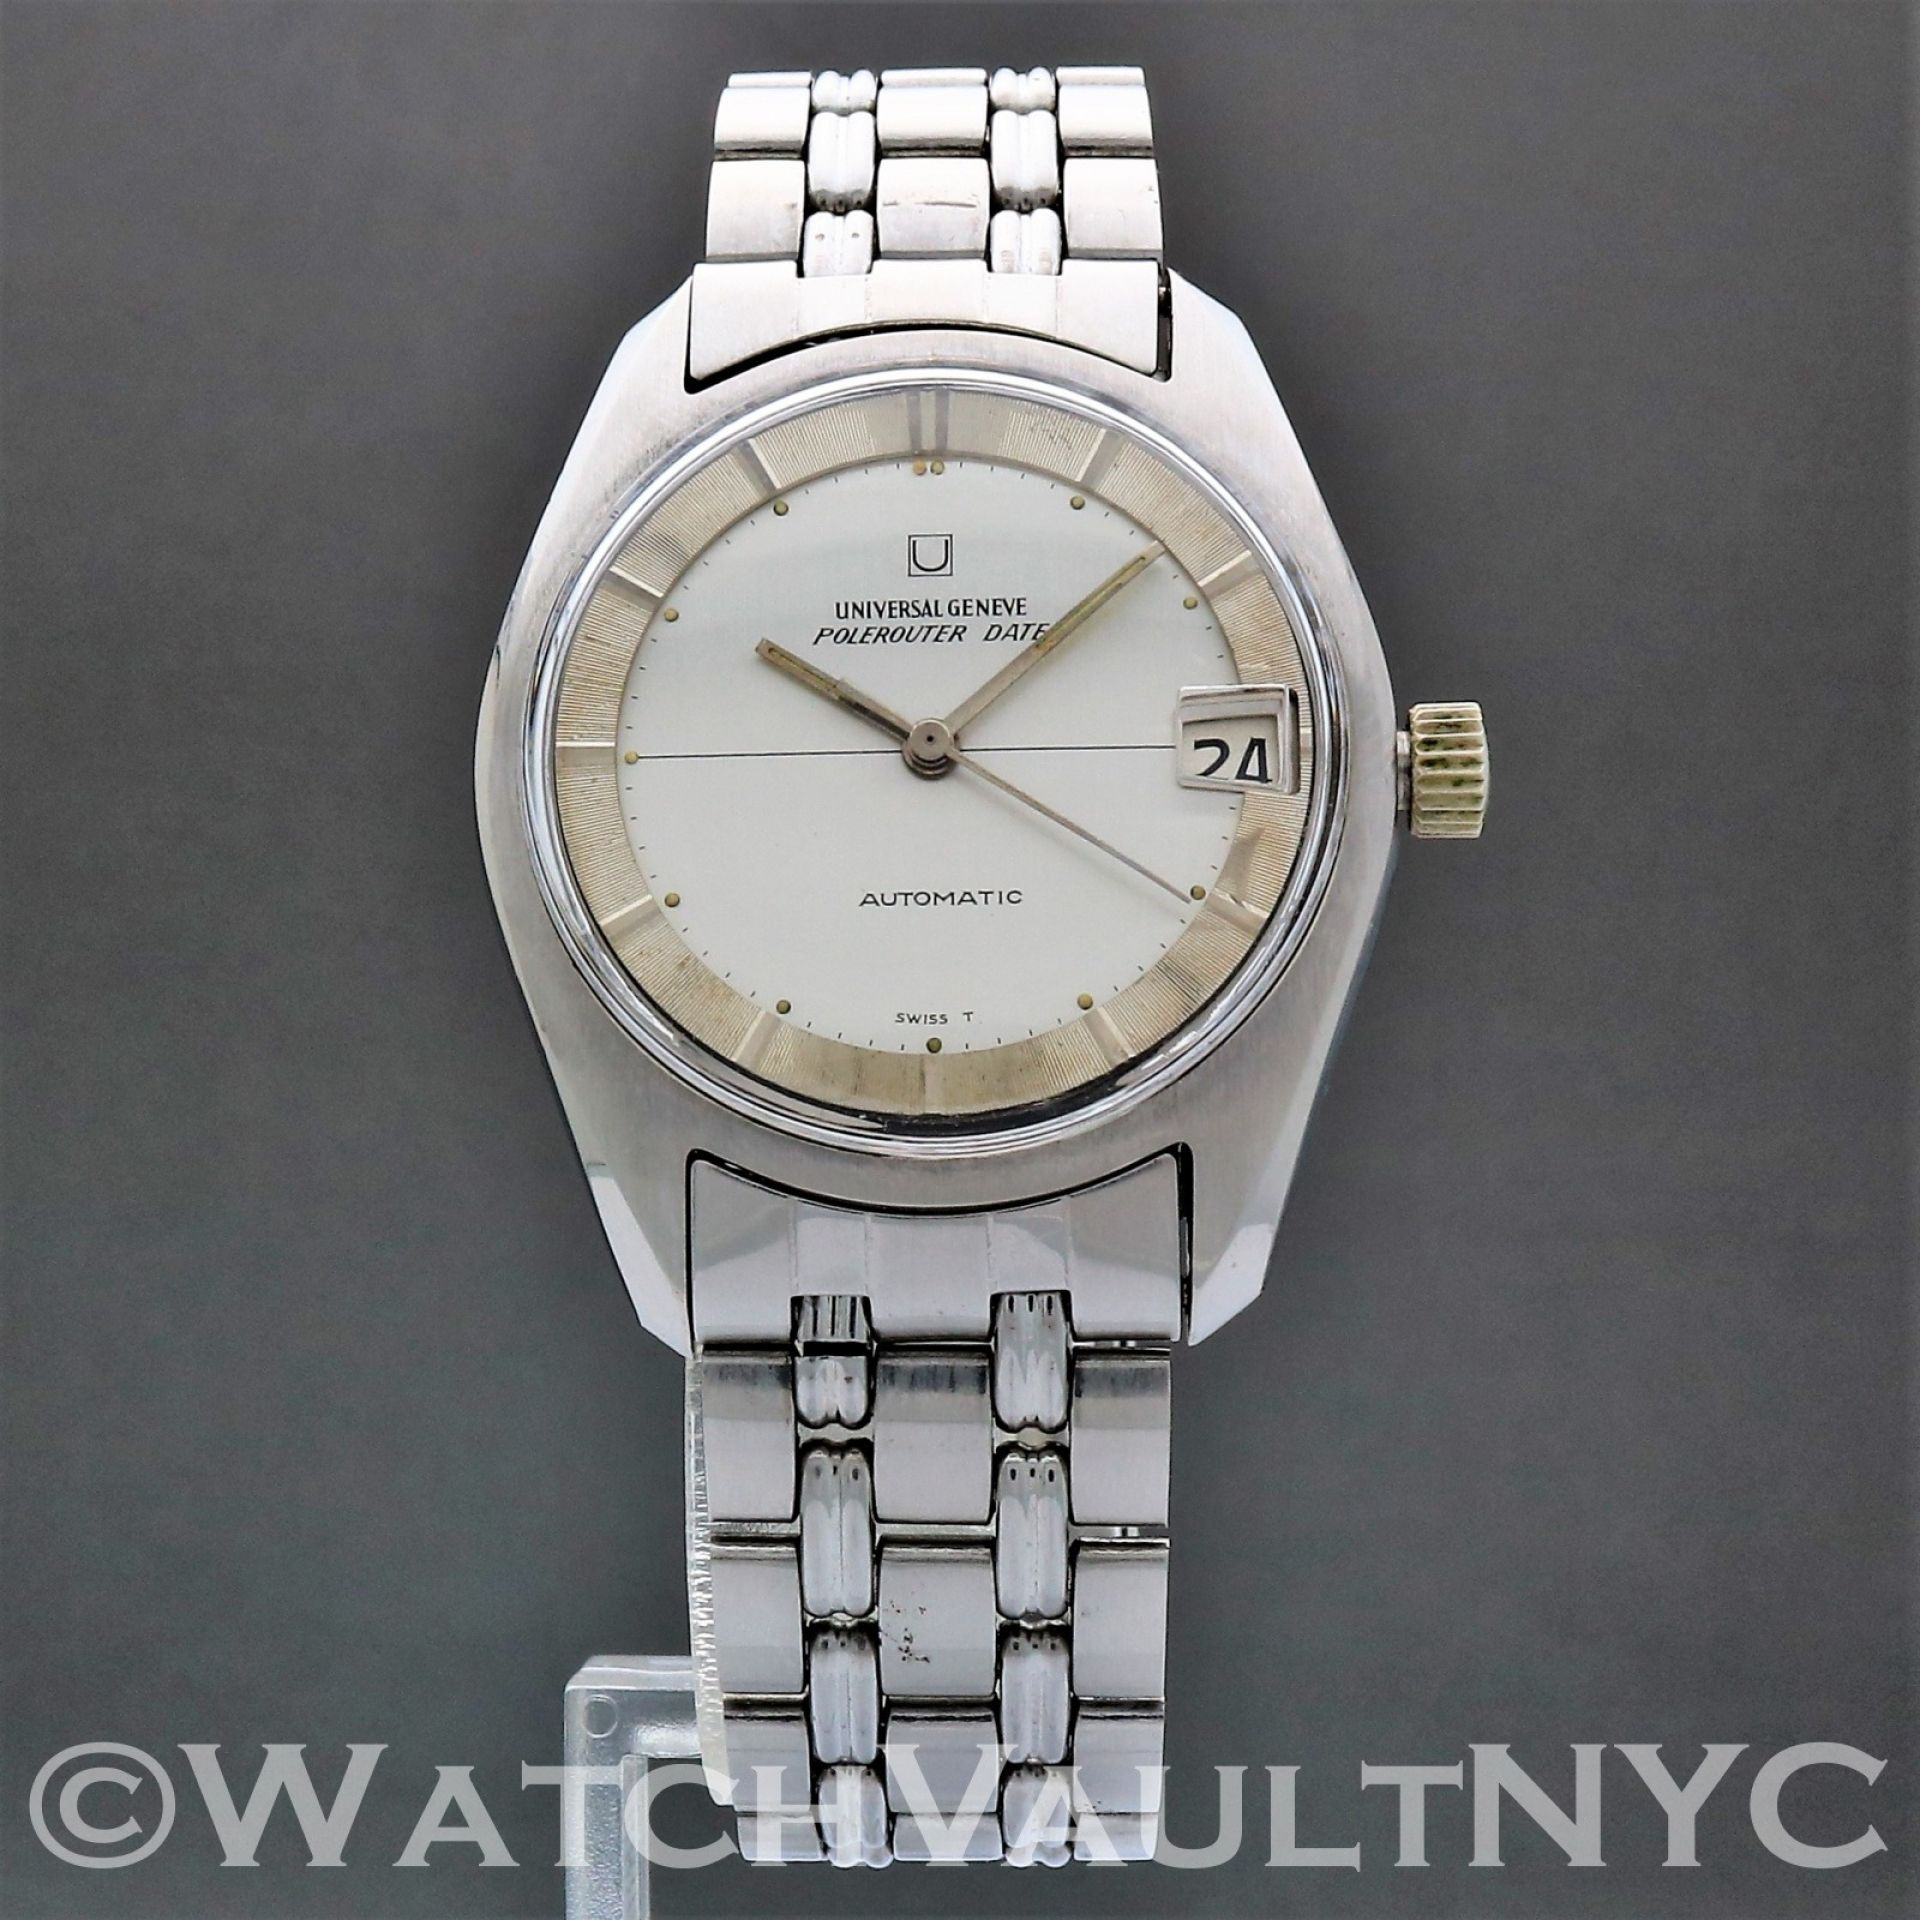 Universal Geneve Polerouter Date 1960s Vintage 34mm Auto  RA302